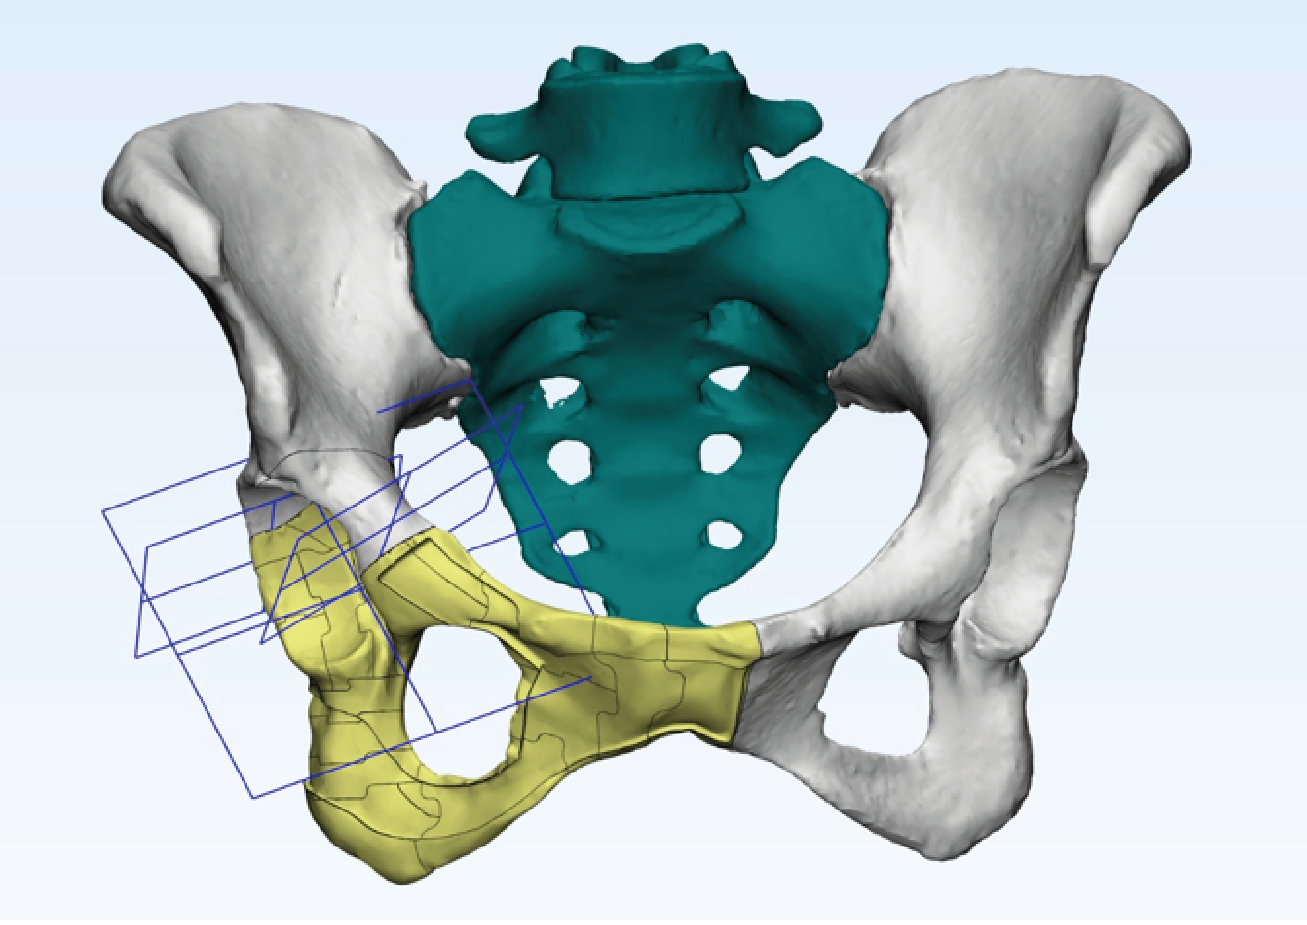 Oncological Hip Reconstruction performed with Smartbone On demand